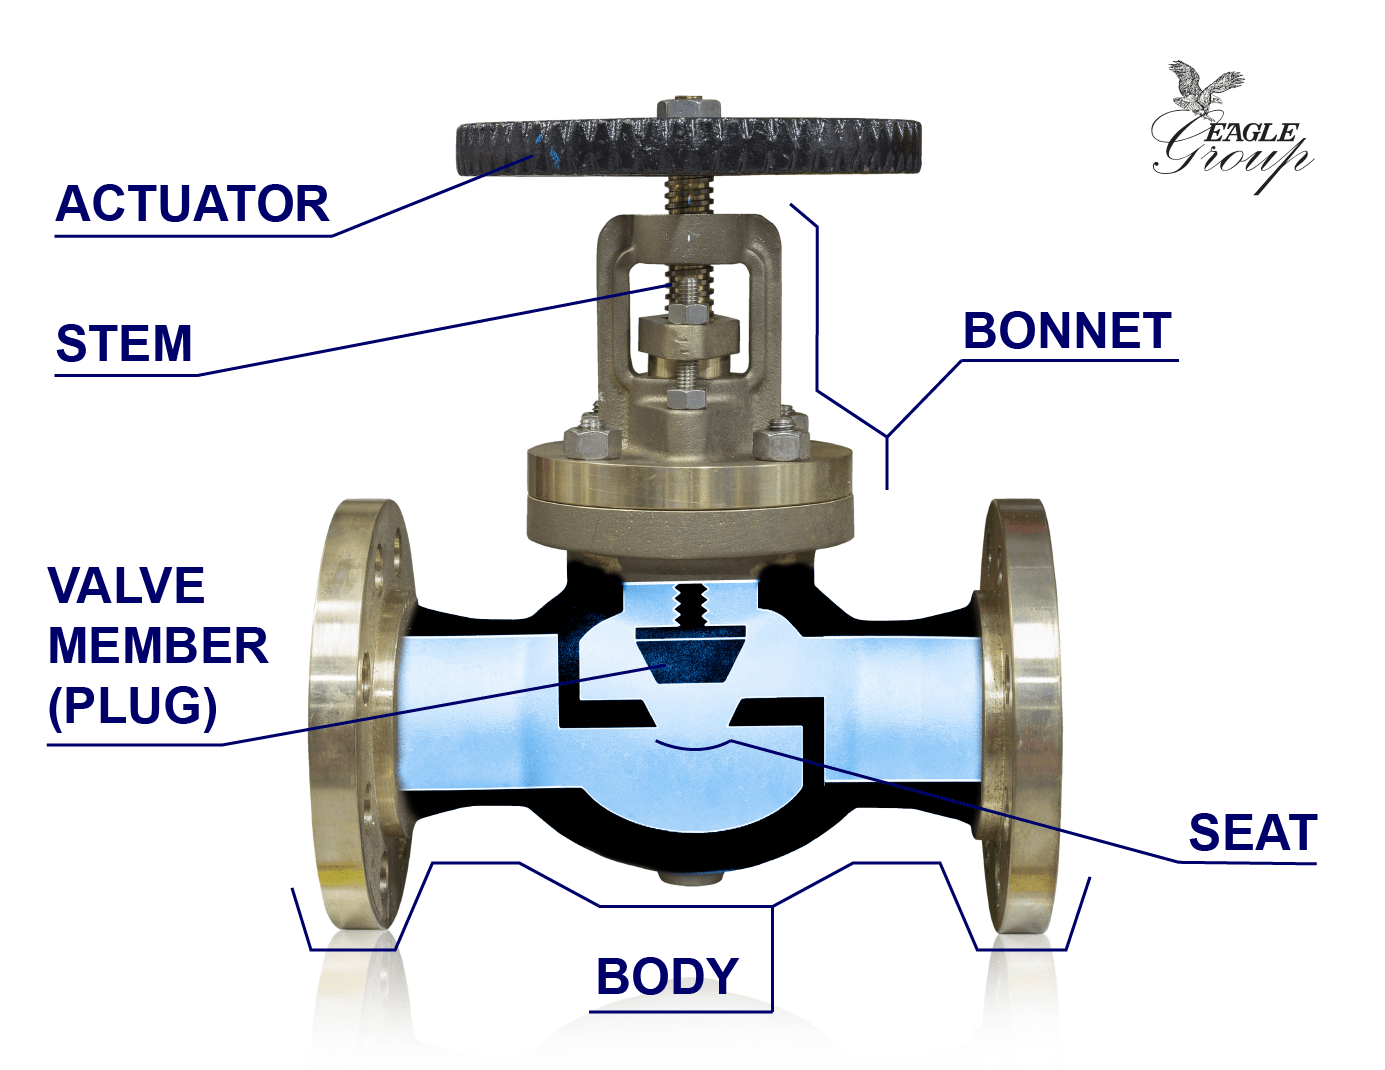 medium resolution of anatomy of industrial valves taco zone valve wiring diagram anatomy of an industrial valve globe valve